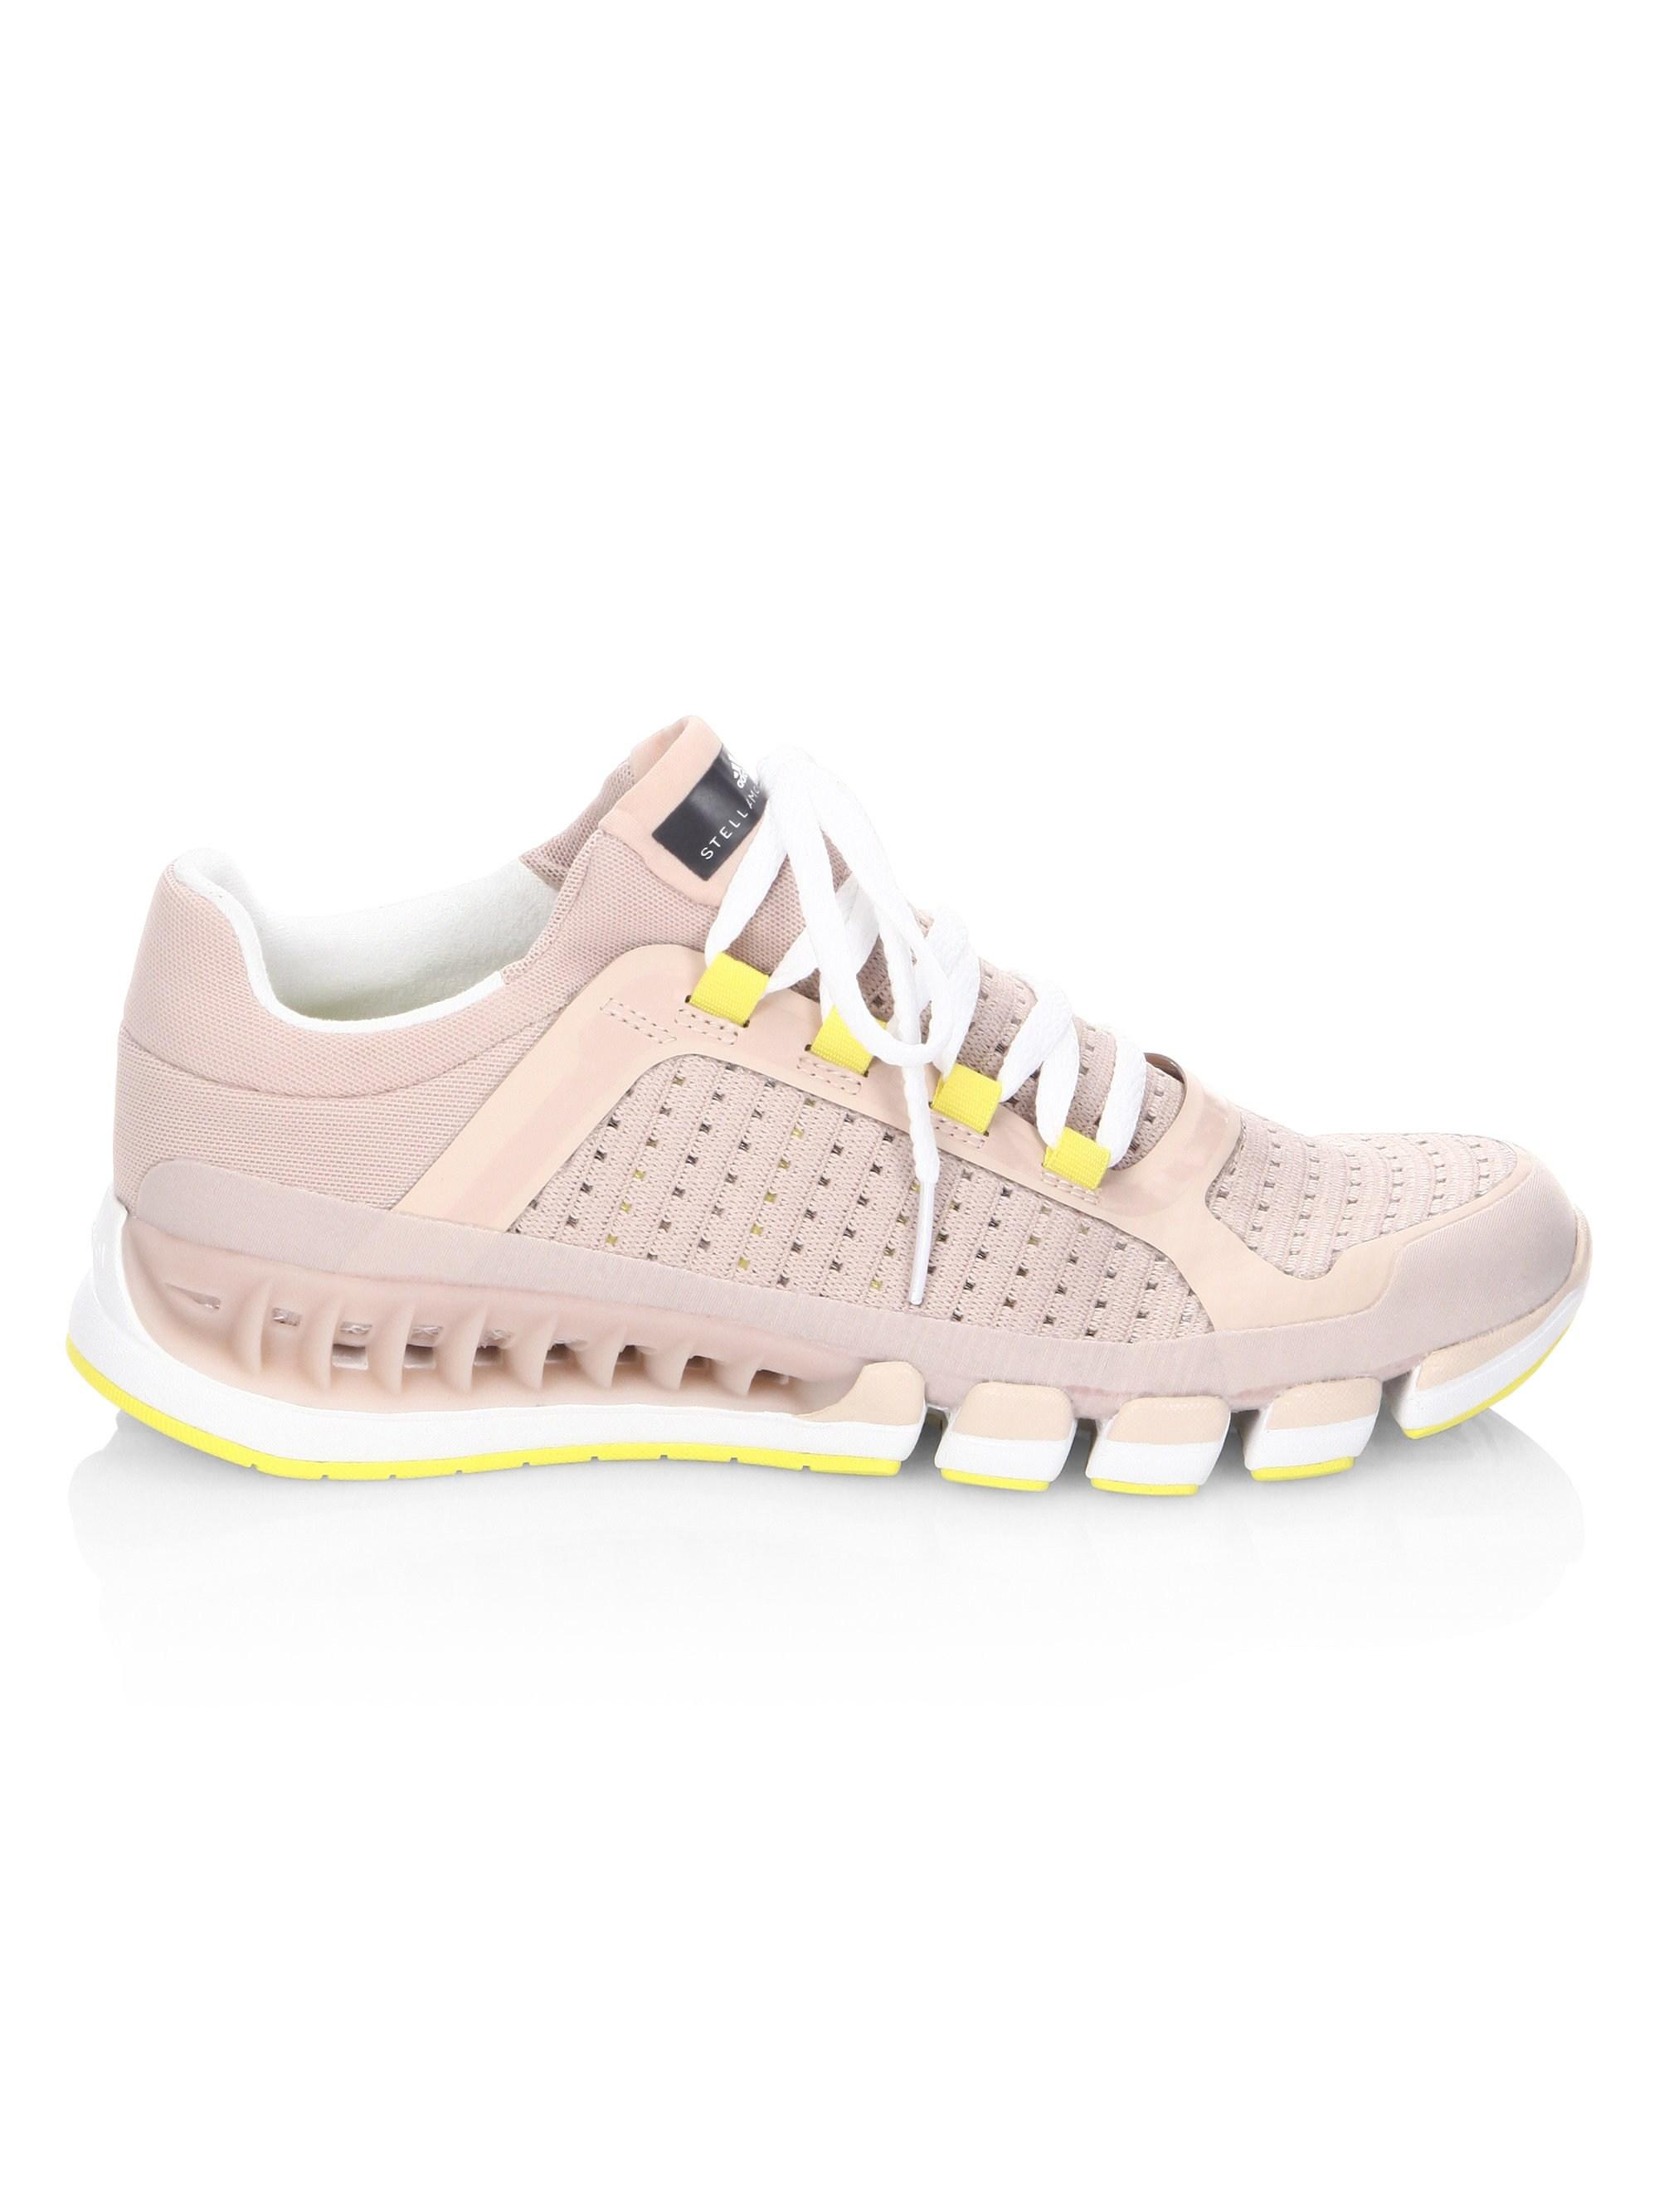 27d71f71223f adidas By Stella McCartney Clima Cool Revolution Sneakers in Pink - Lyst